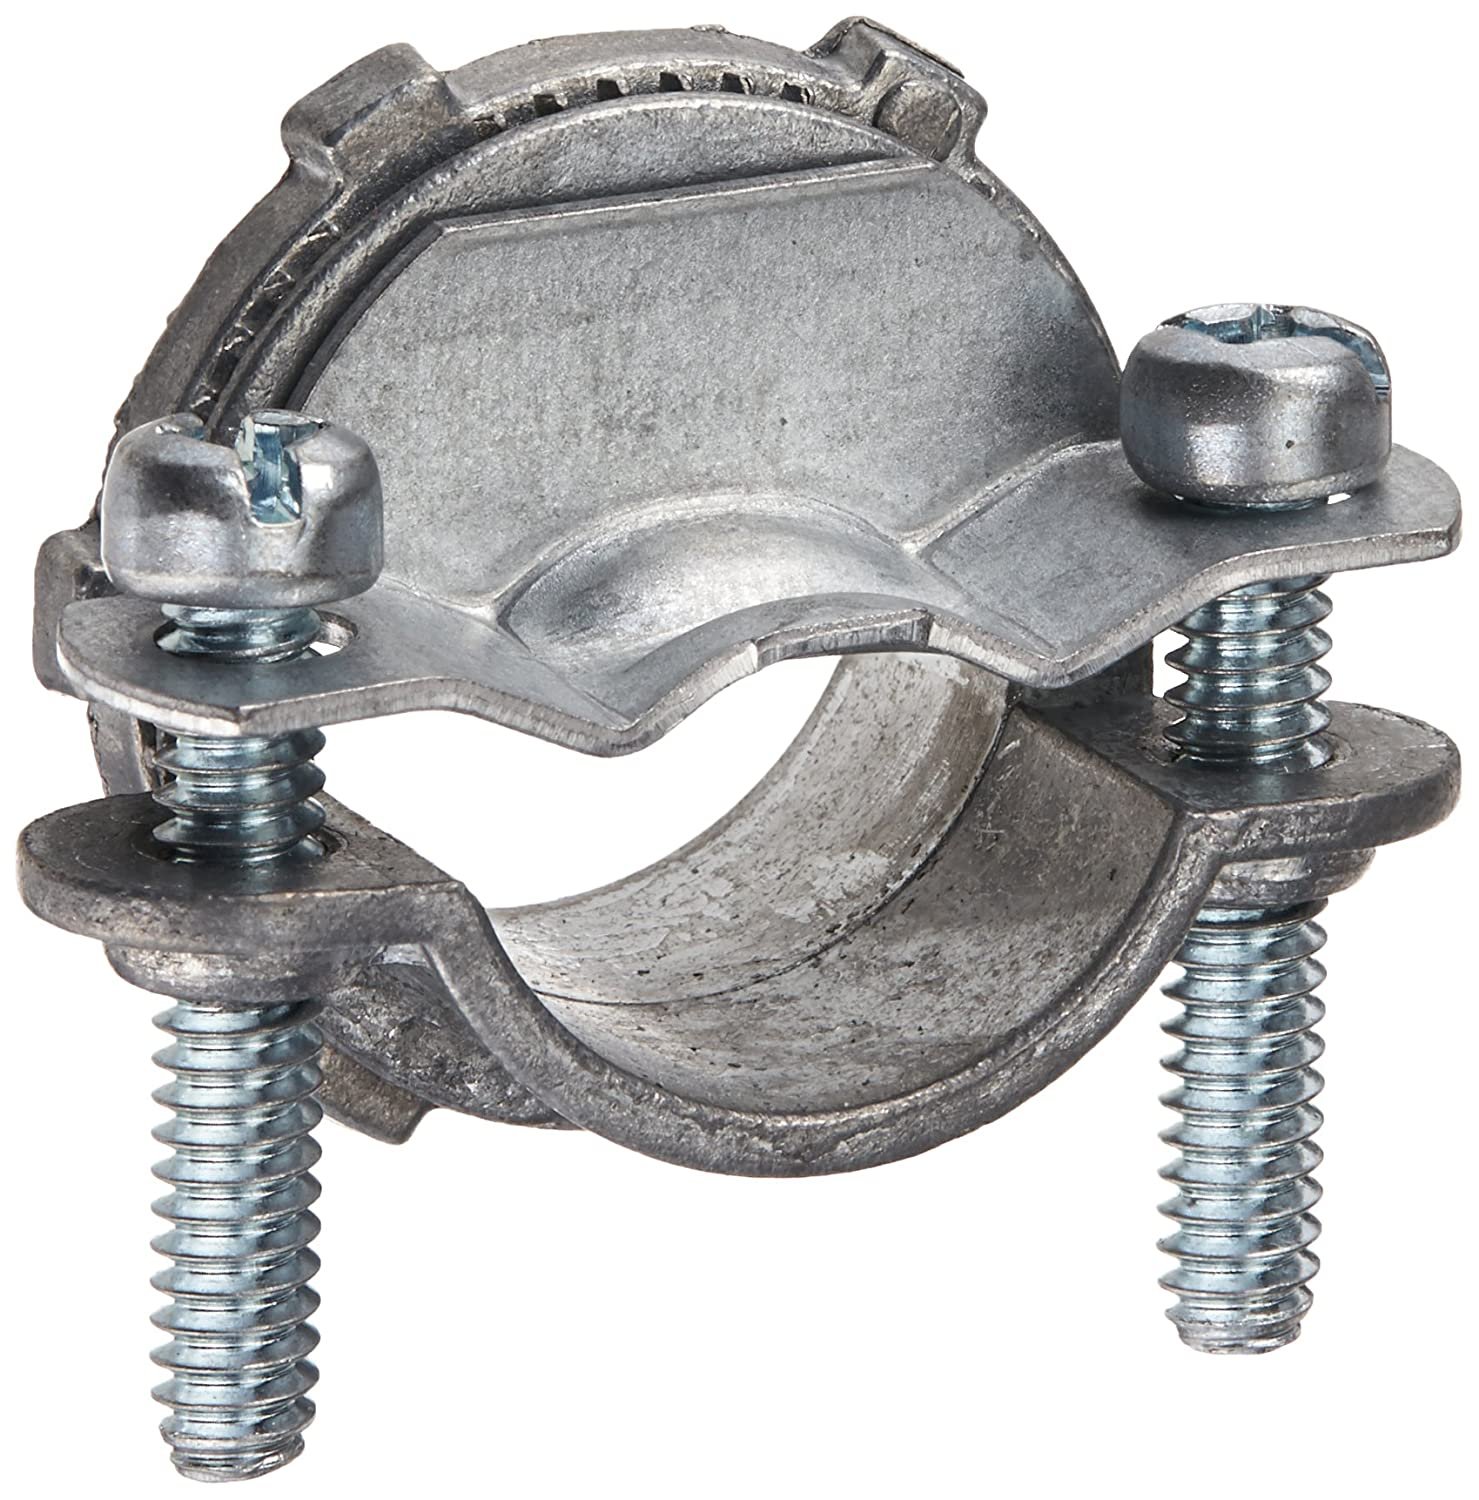 Hubbell Raco 2863B5 Clamp Type for Oval or Round Cable Connector 3 4 Inch Zinc 5 Pack